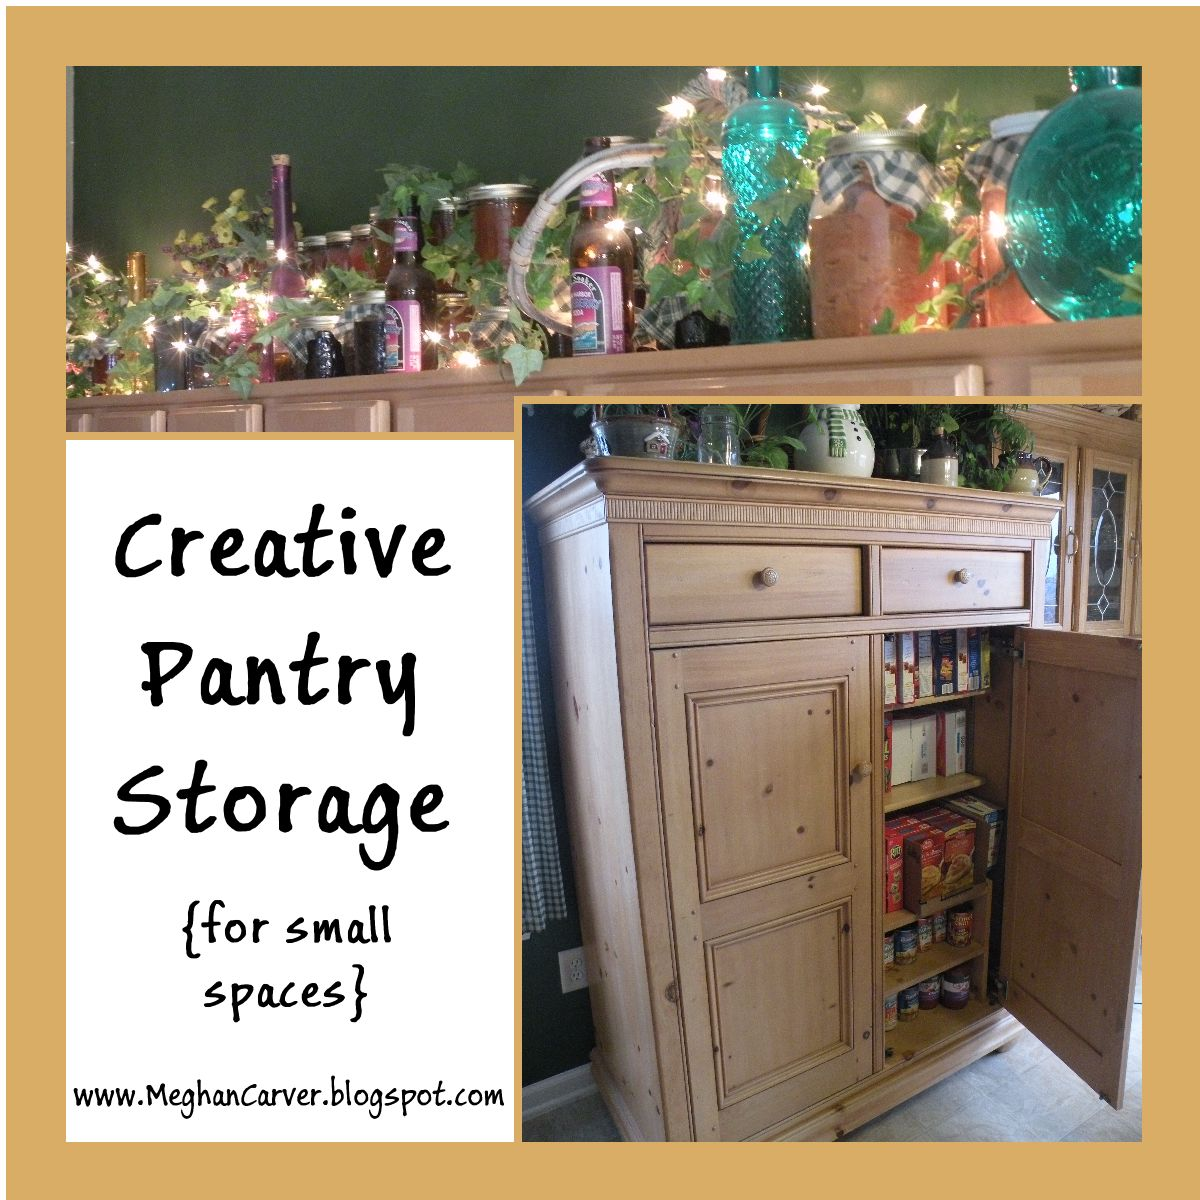 Kitchen Organization Ideas For Small Spaces: Meghan Carver: Creative Pantry Storage